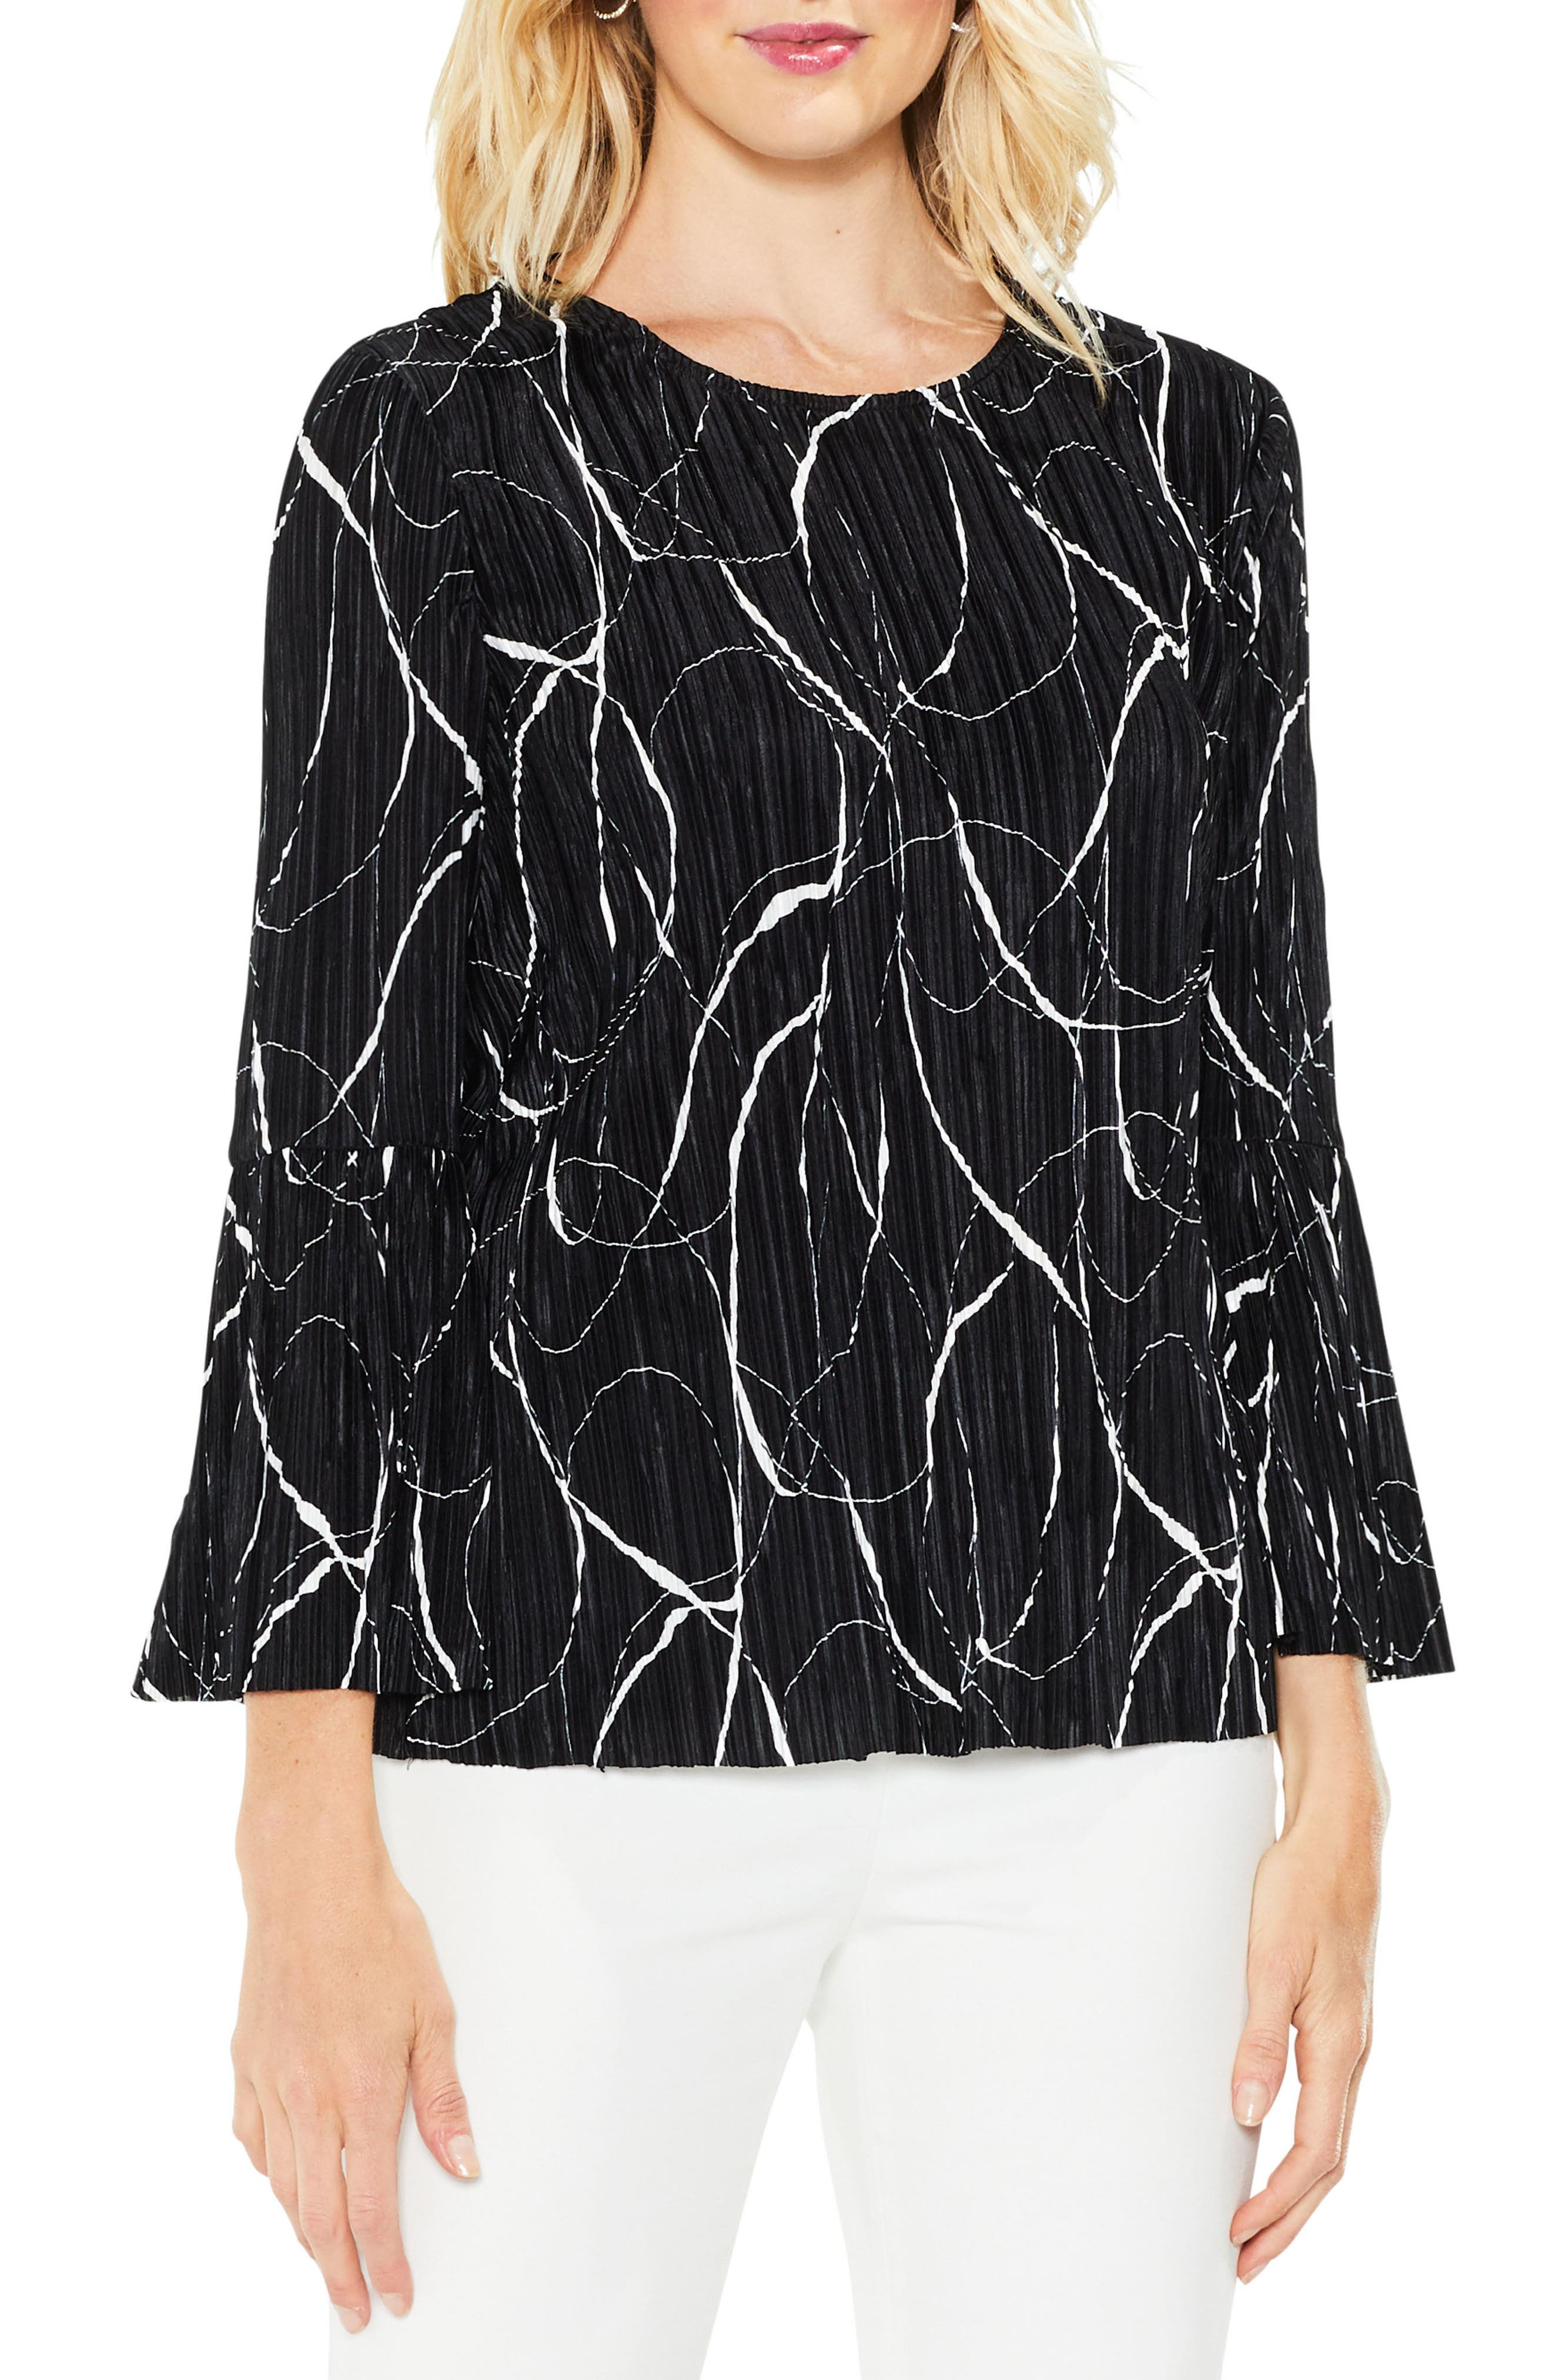 Main Image - Vince Camuto Ink Swirl Bell Sleeve Top